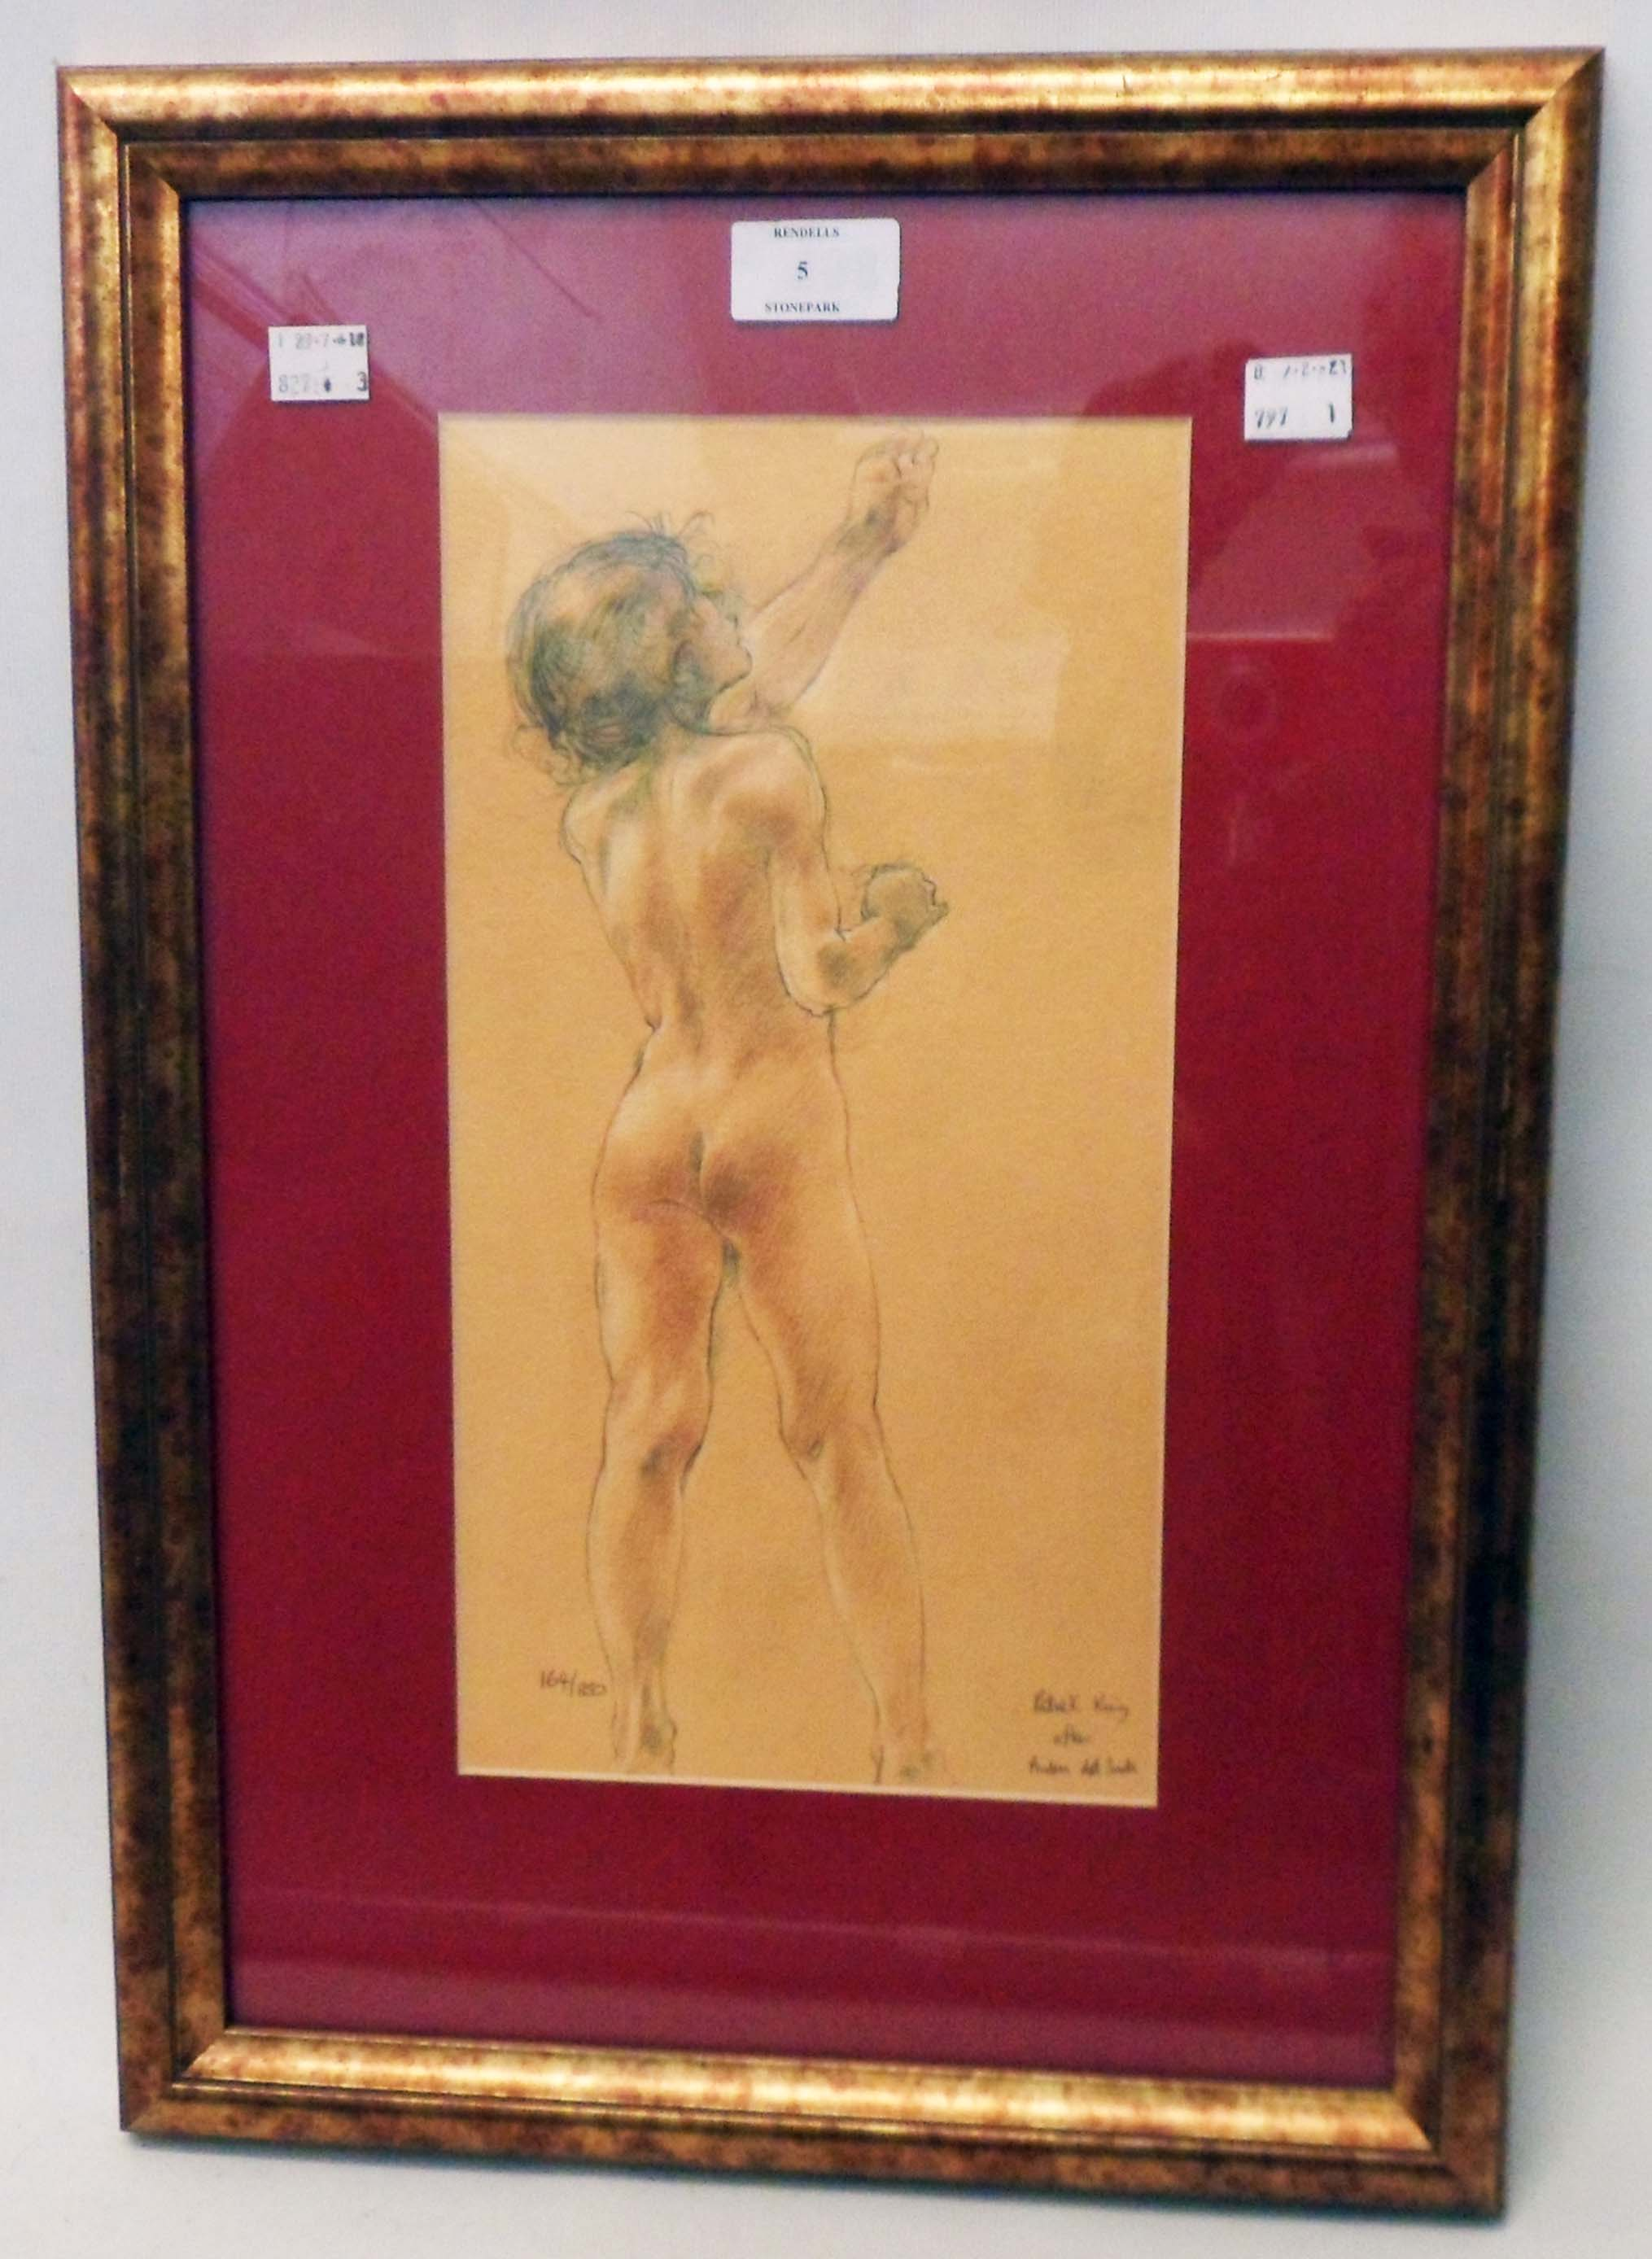 Patrick King: a gilt framed limited edition coloured print, nude study - 164/850